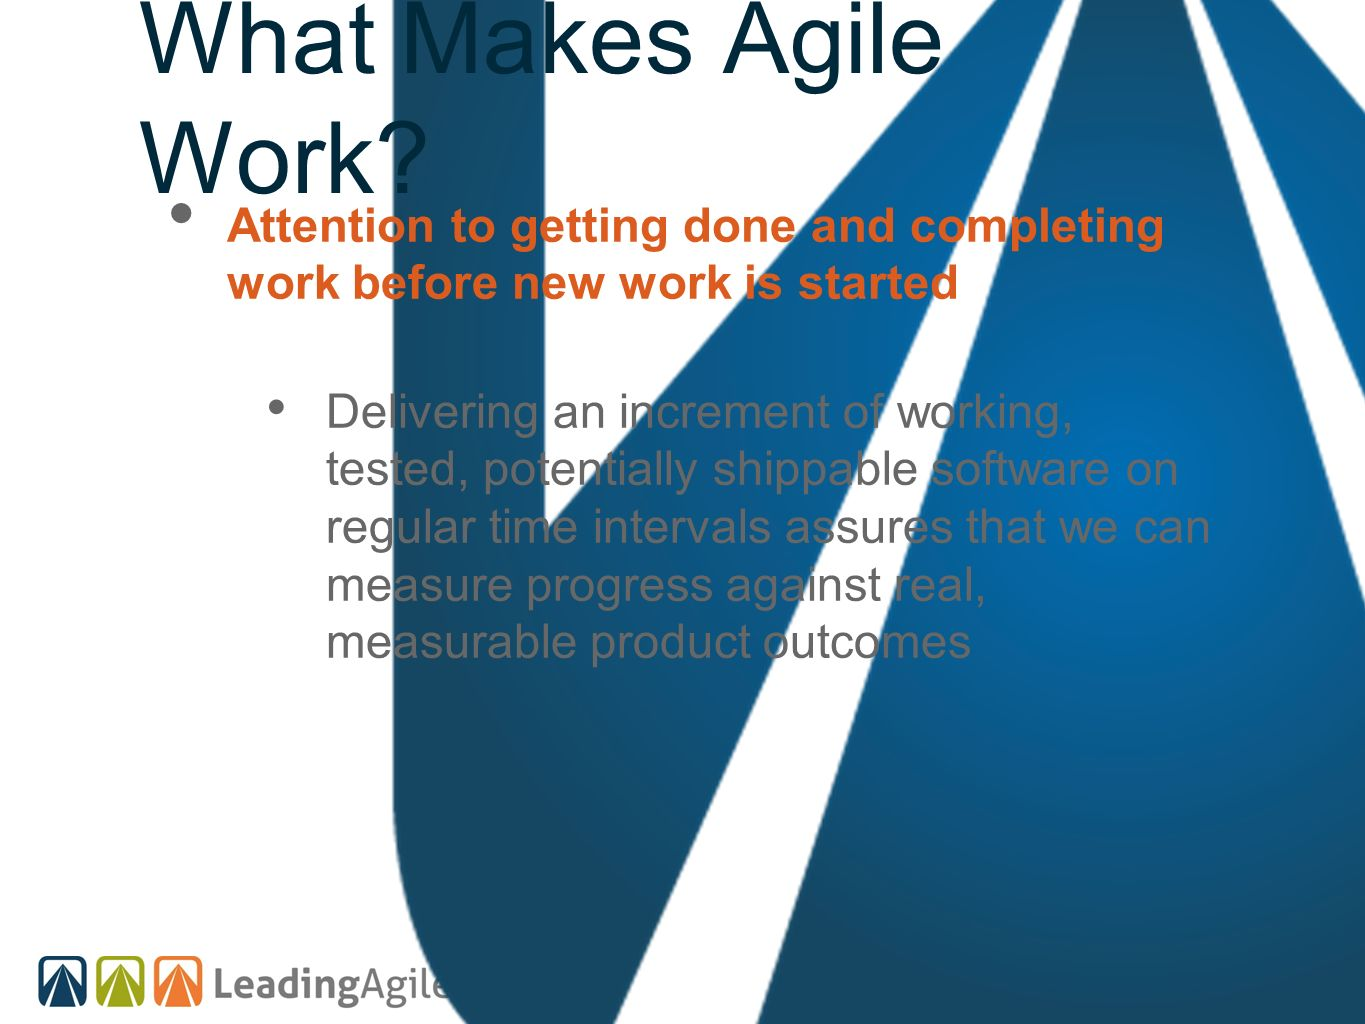 What Makes Agile Work? Attention to getting done and completing work before new work is started Delivering an increment of working, tested, potentiall